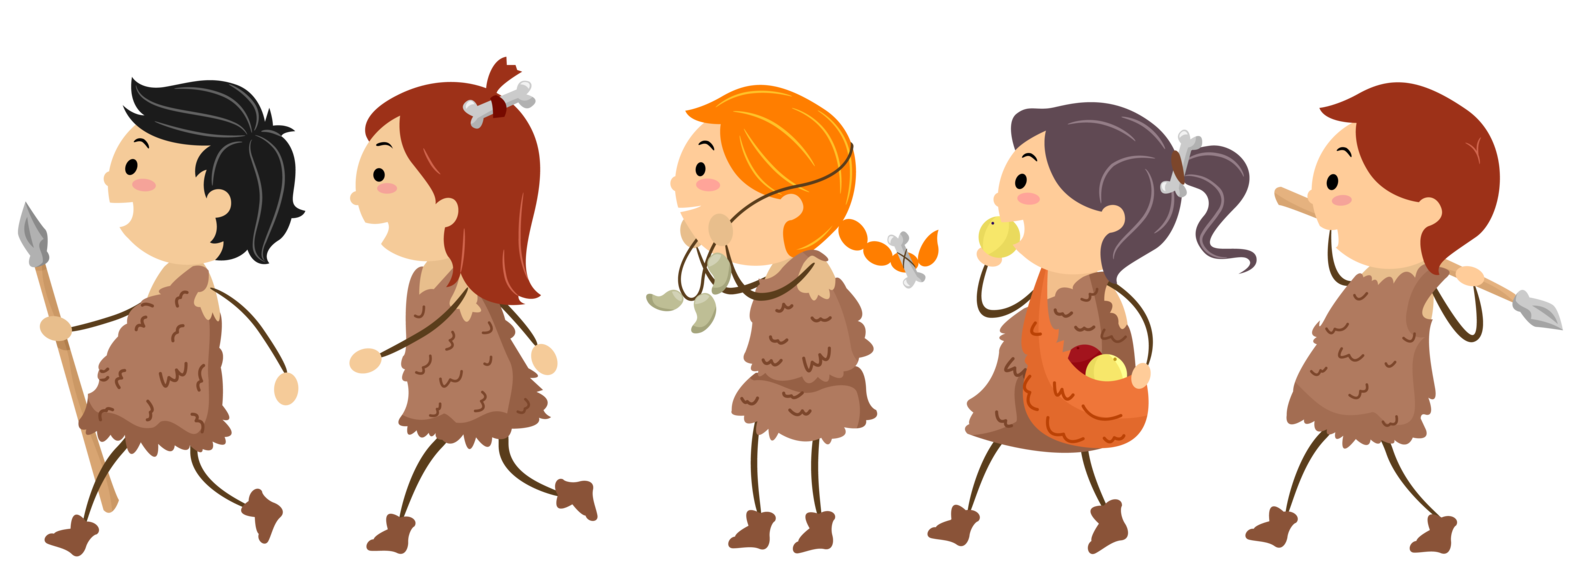 Time traveller kids looking. Hut clipart stone age